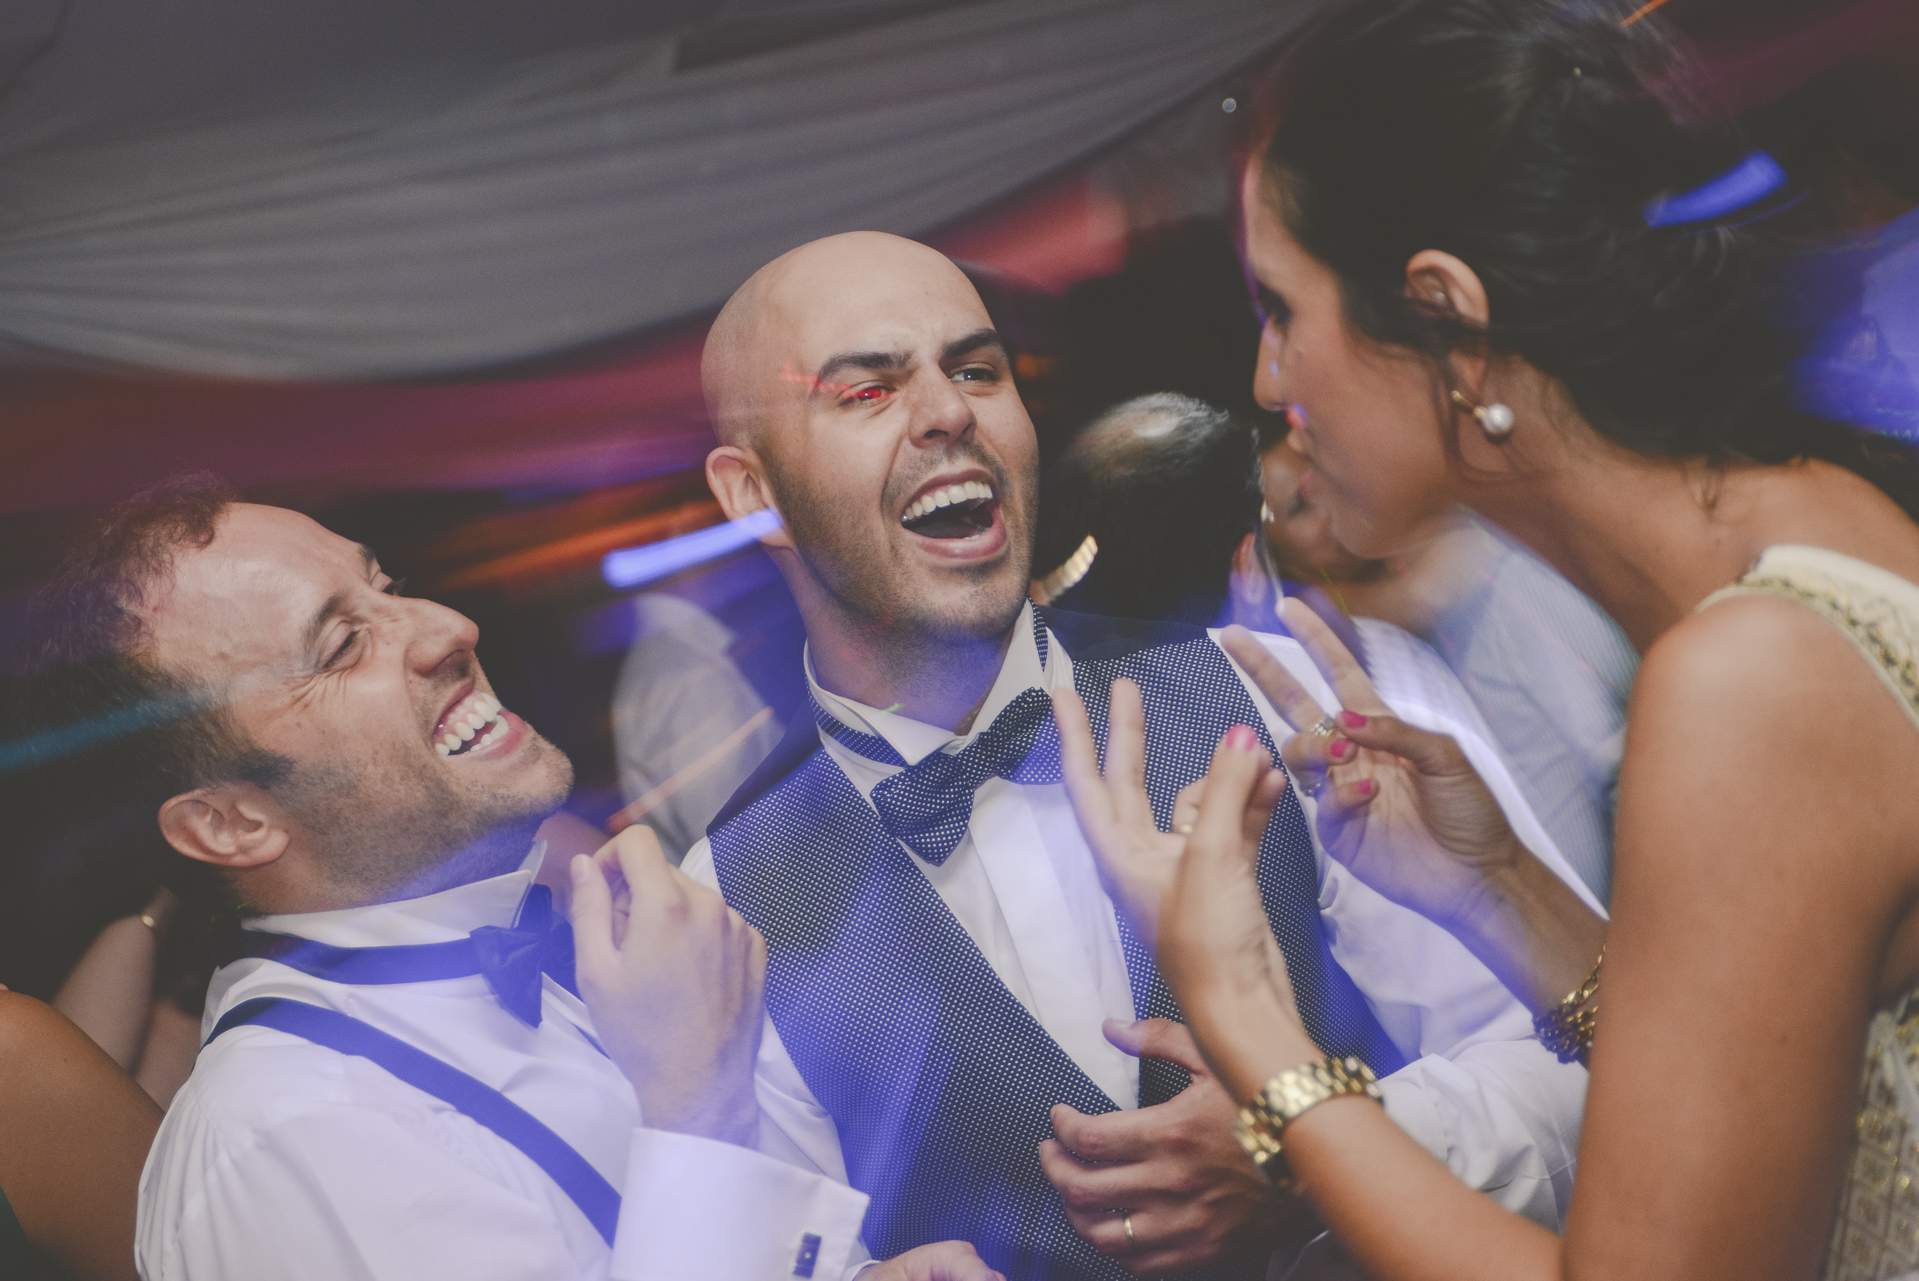 gay wedding party photography, fotografia de fiesta boda gay